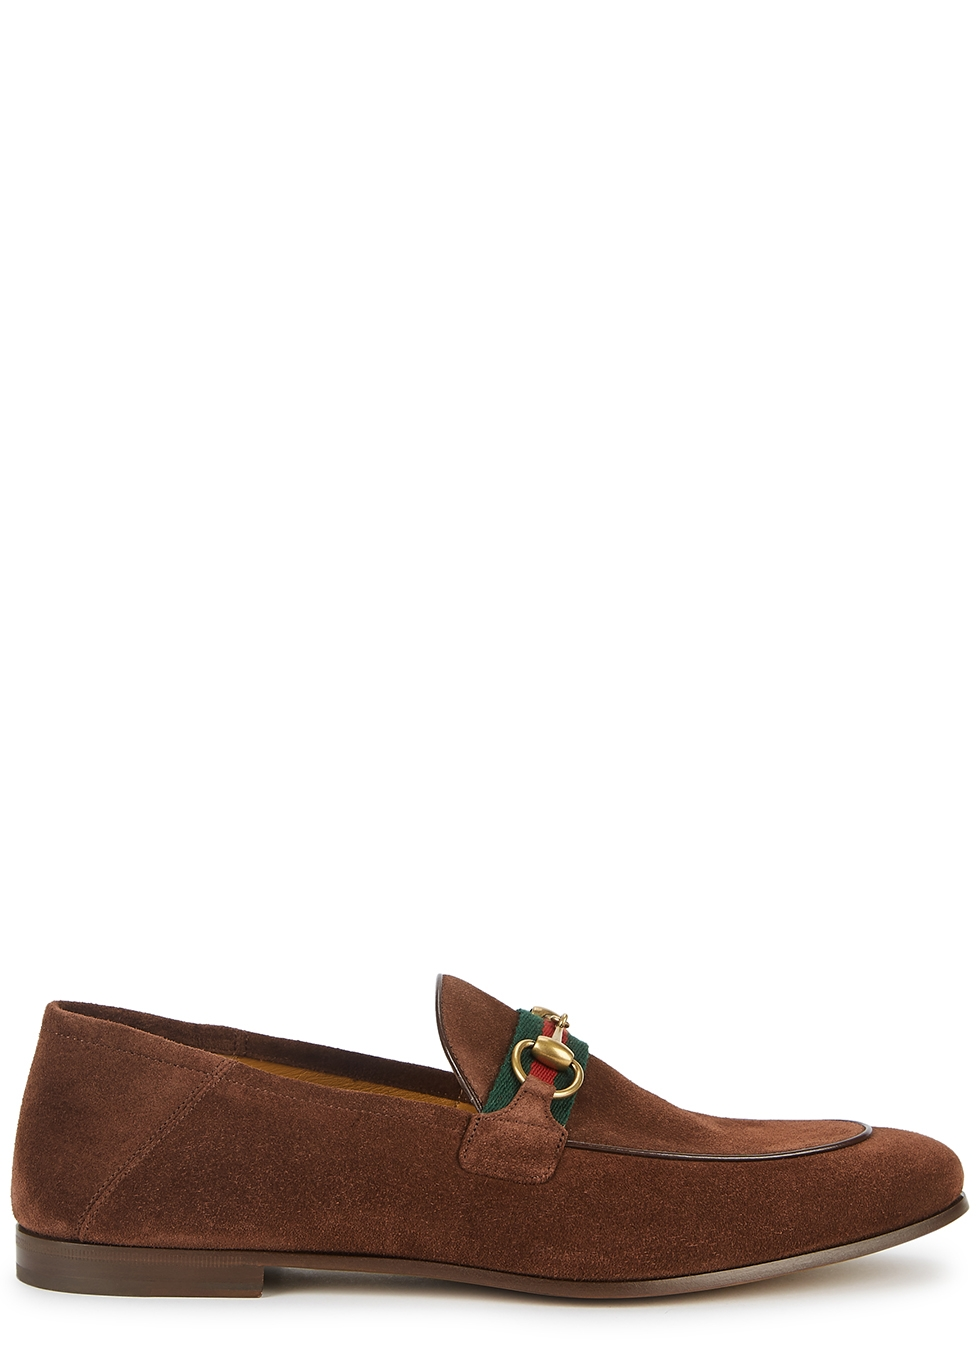 Brixton brown suede loafers